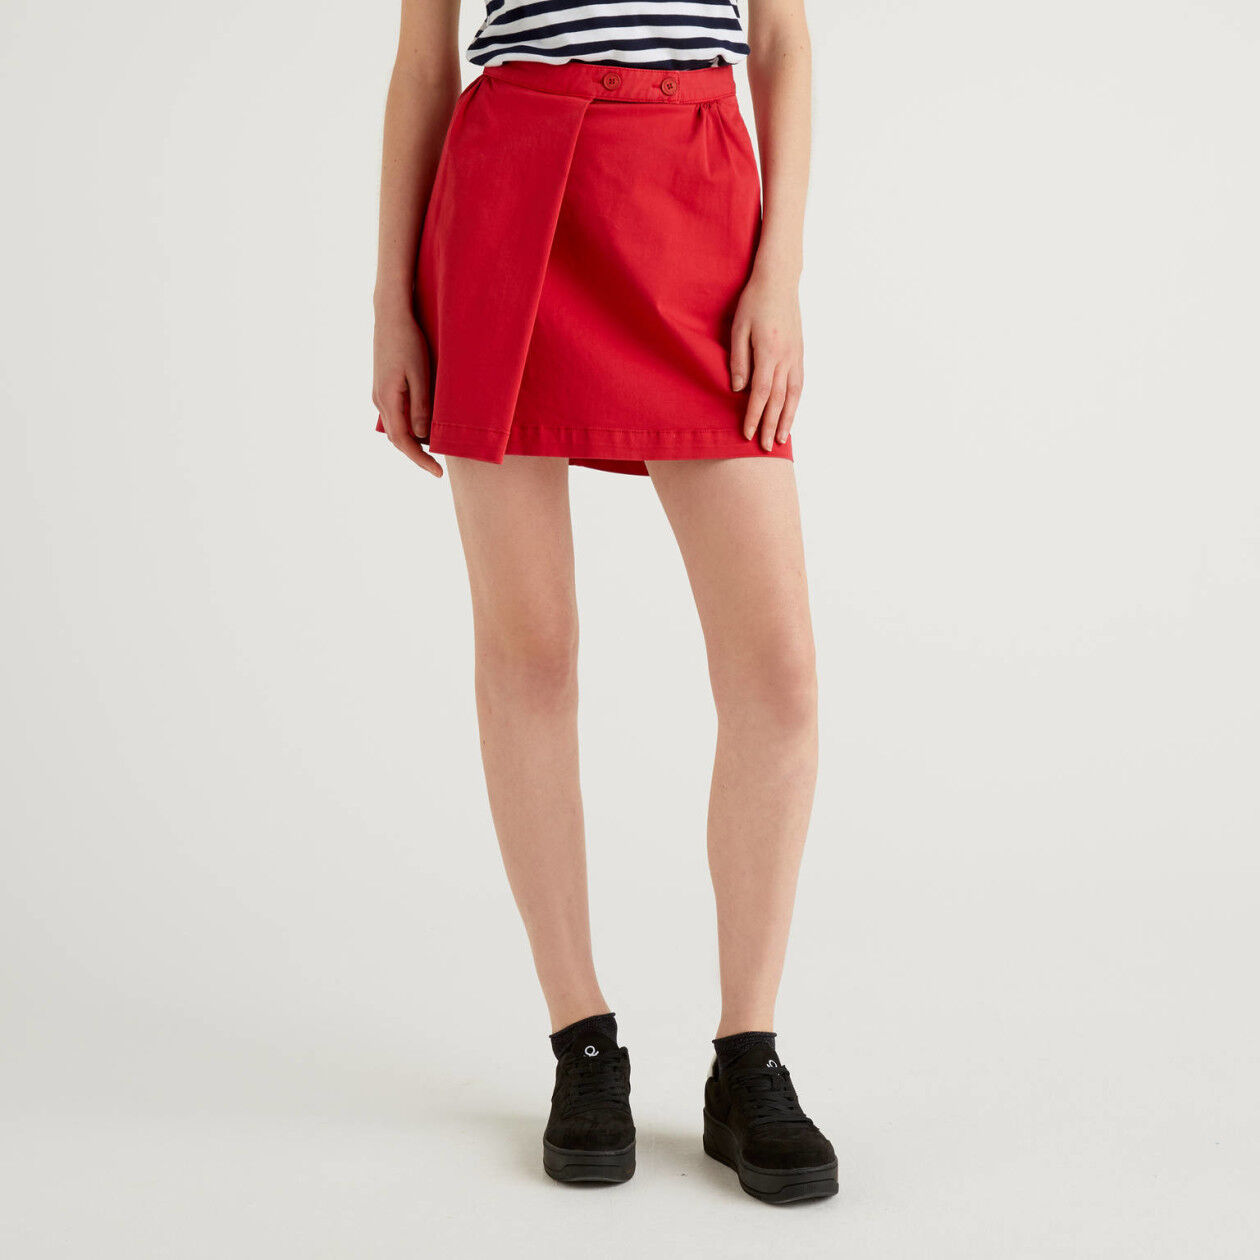 Flared short skirt